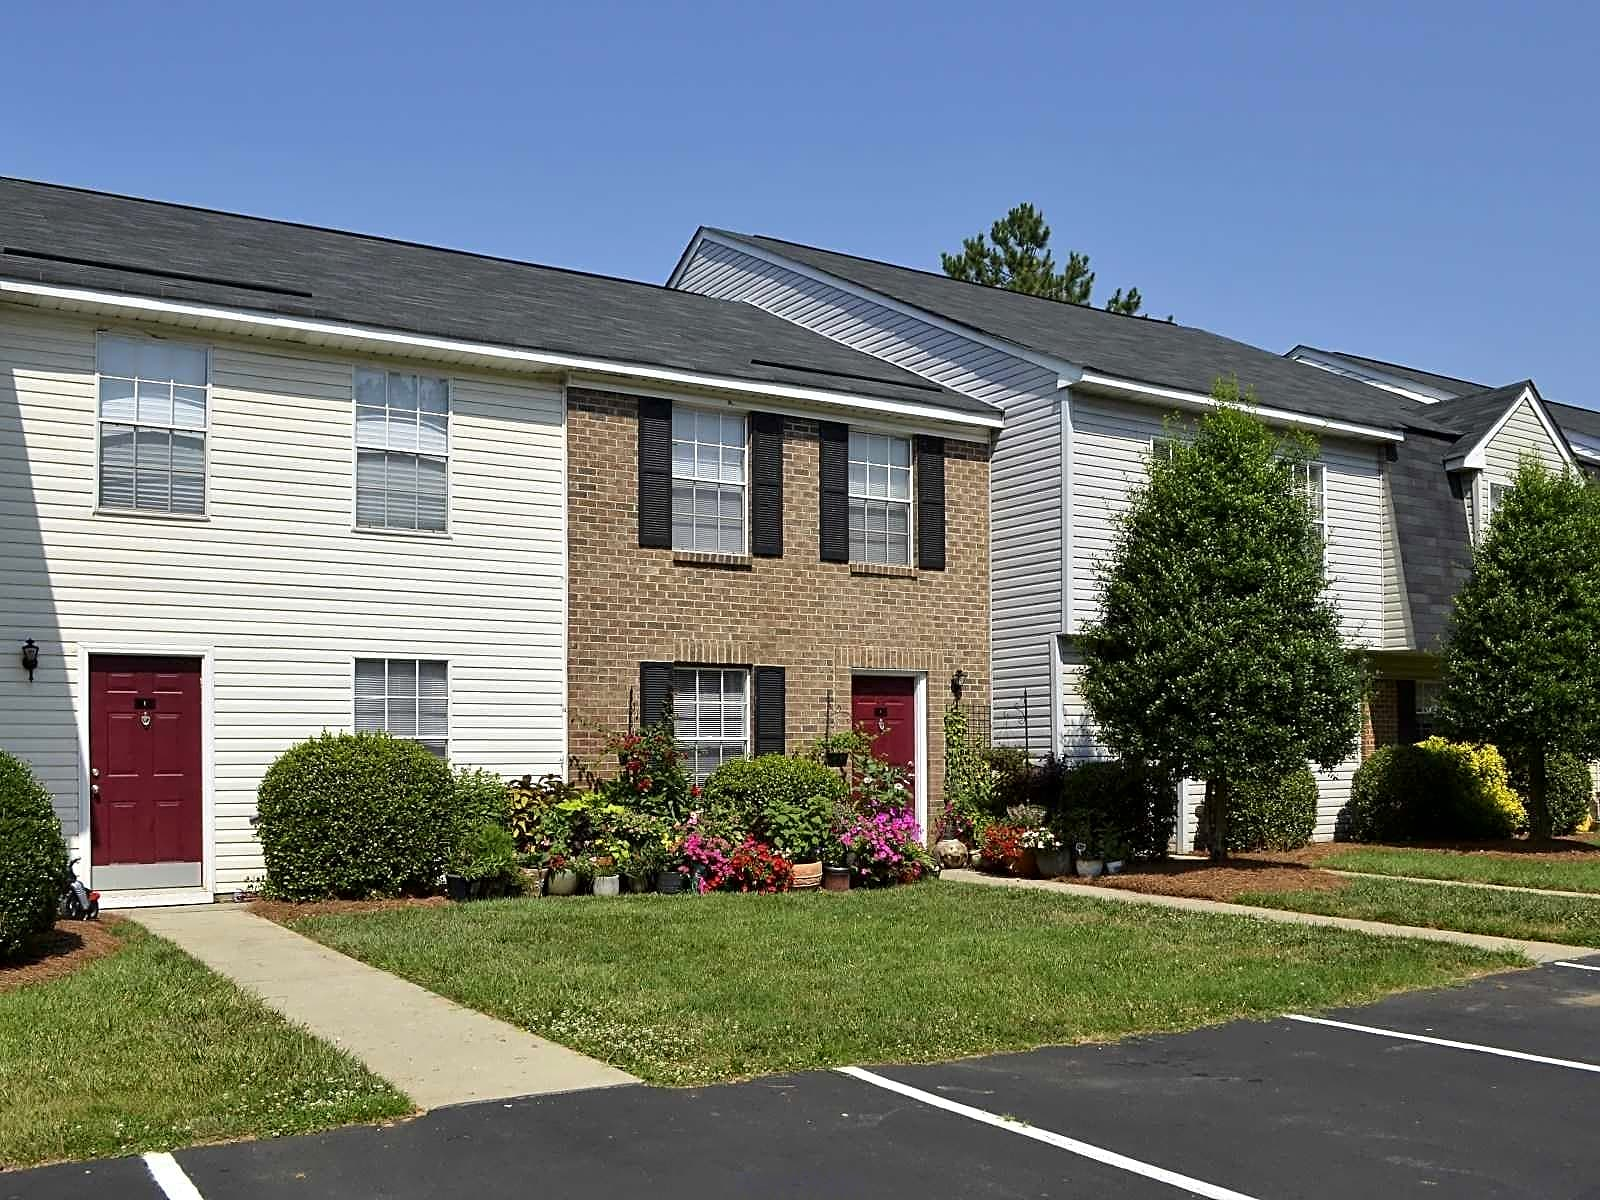 Pet Friendly Apartments In Greensboro Nc Pet Friendly Houses For Rent